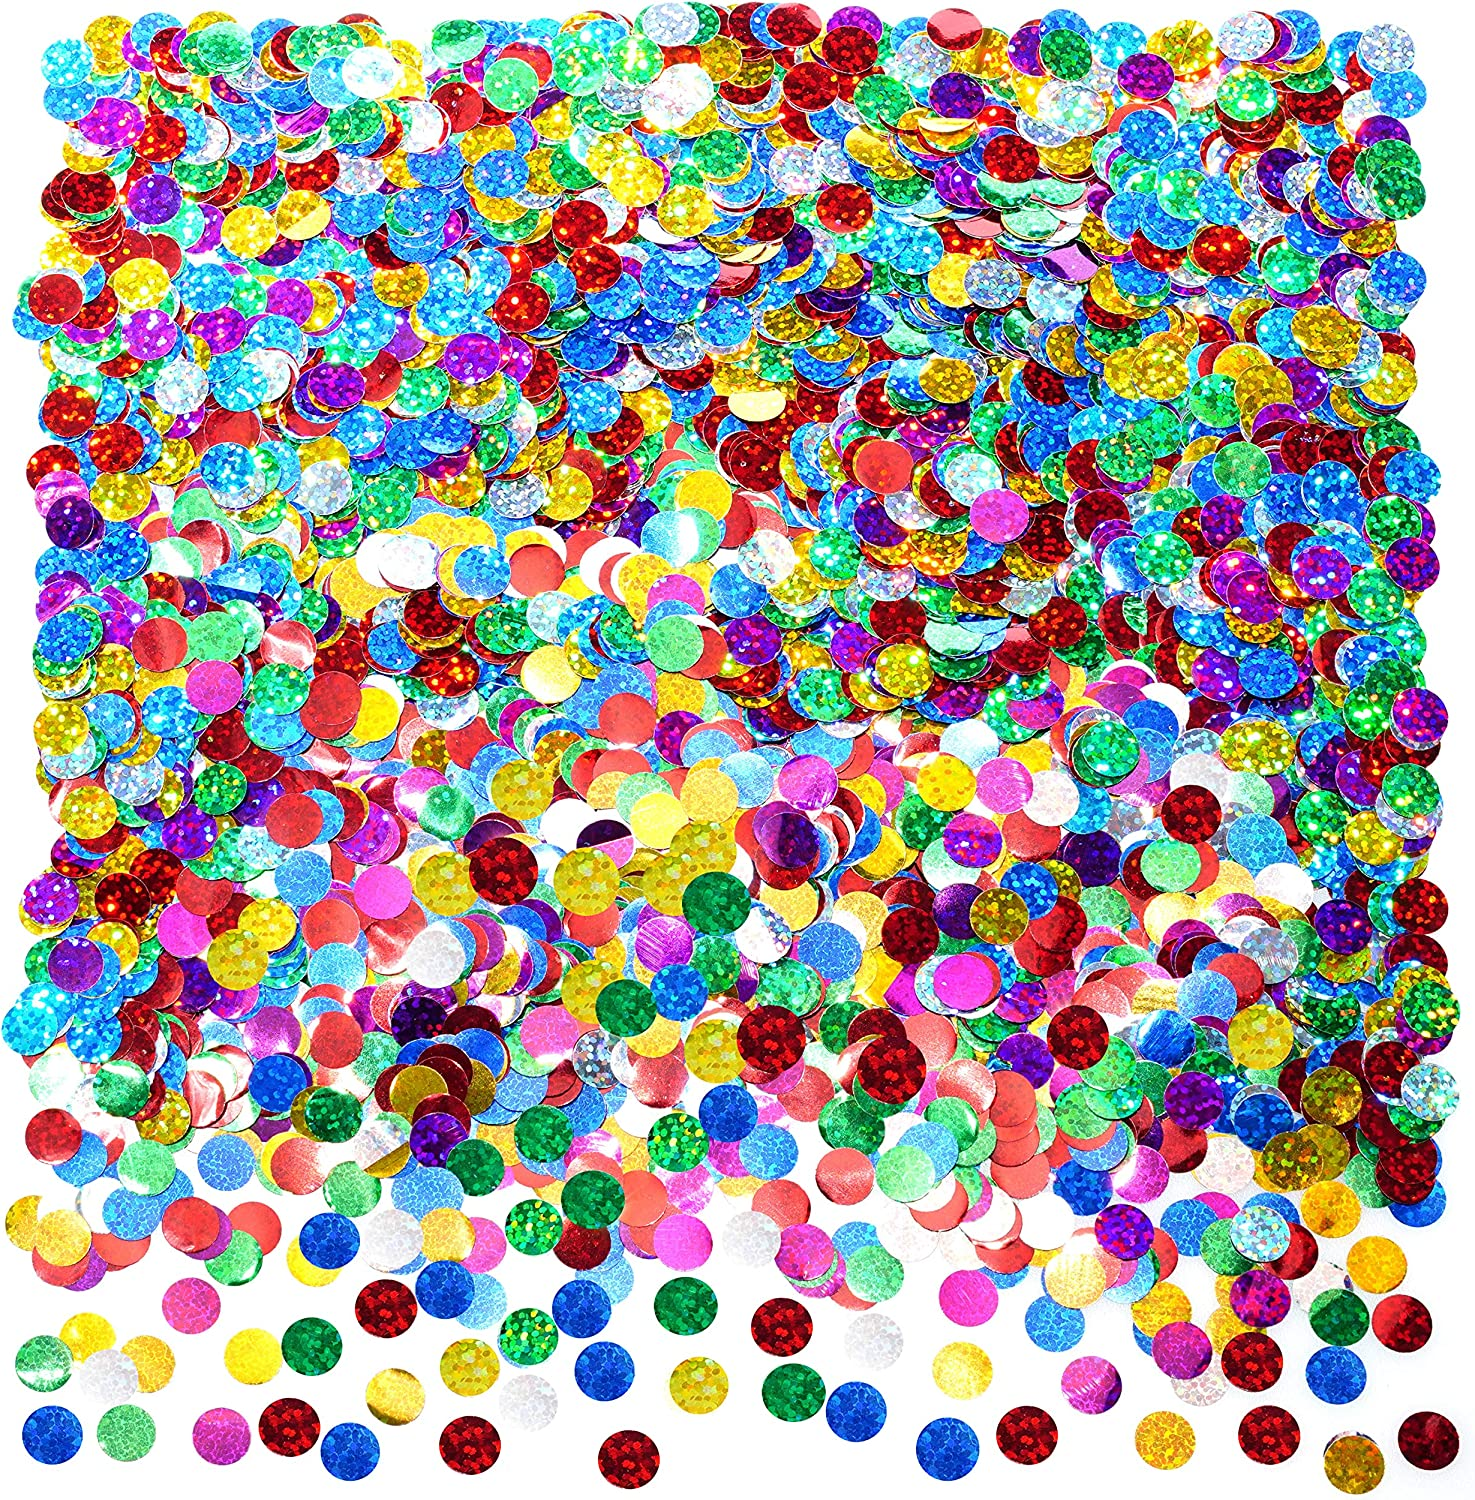 Multicolor Sparkle Foil Metallic Round Table Confetti Decor Circle Dots Mylar Table Scatter Confetti Wedding Bachelorette Valentines Mothers Day Baby Shower Birthday New Years Party Confetti Decorations, 50g